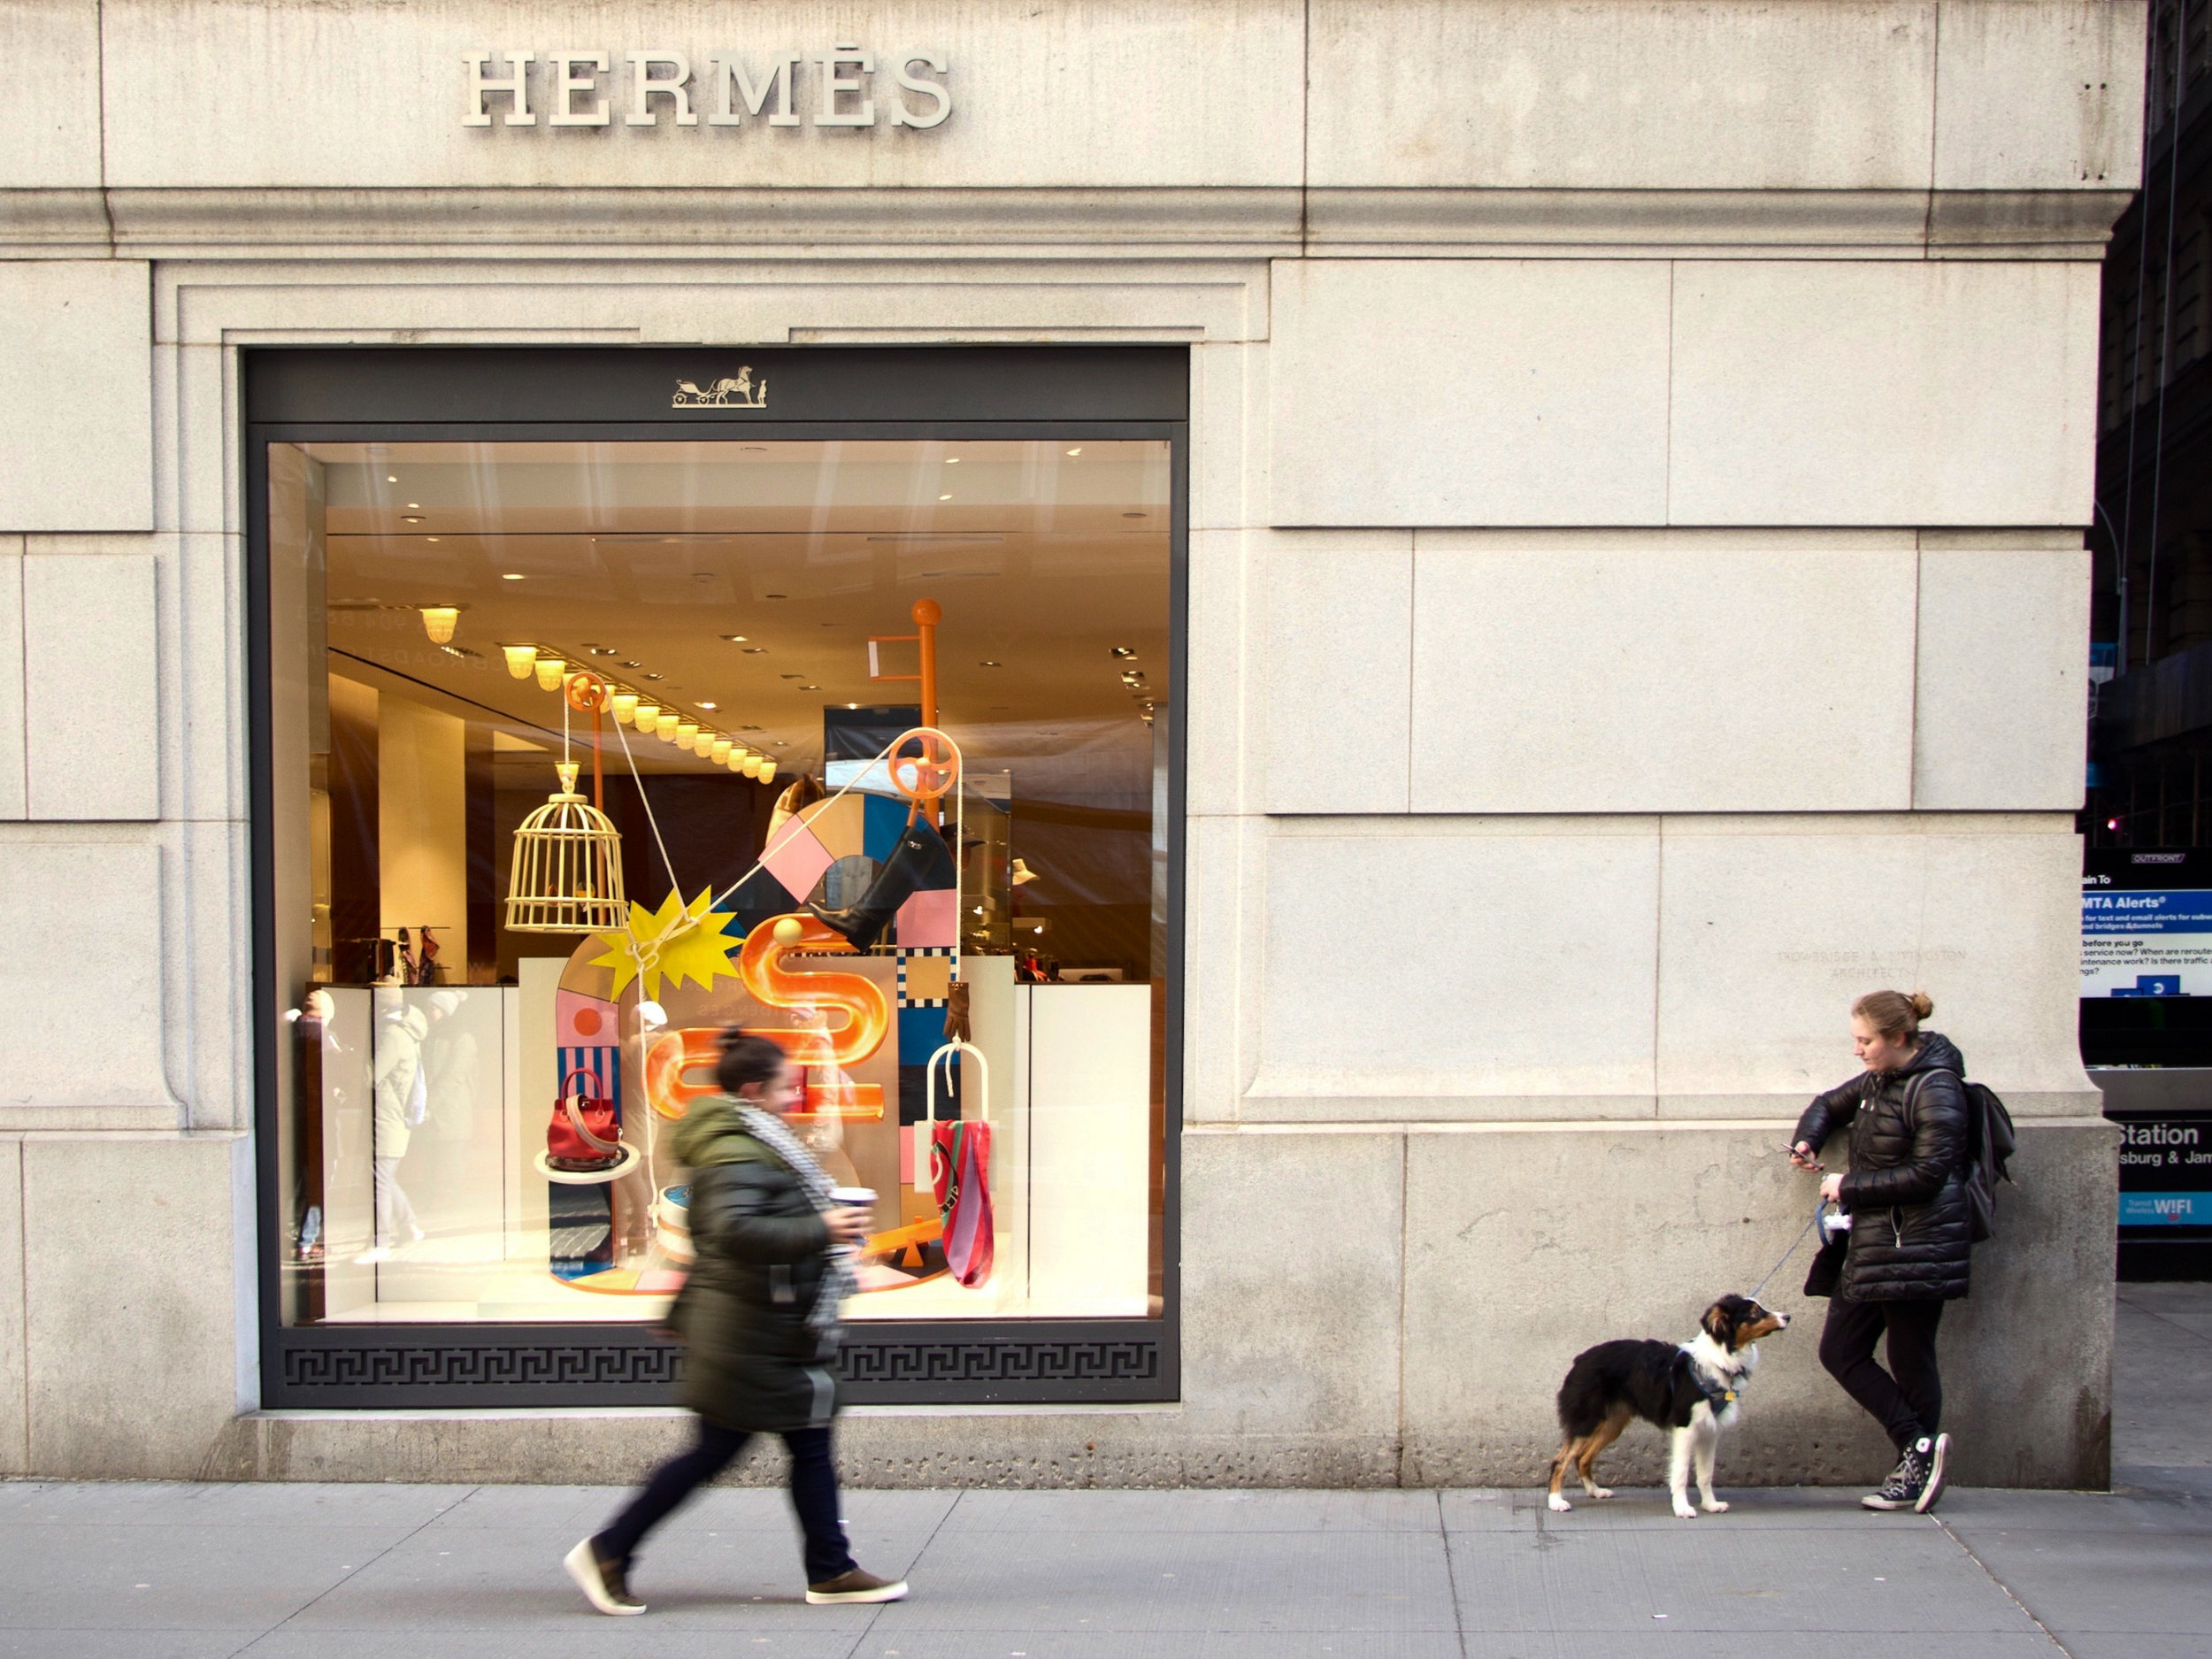 Woman with dog stands outside luxury store, Hermes, on the corner of Exchange Place and Broad Street in the Financial District, NYC. || Photo credit to Gabriela Kressley.